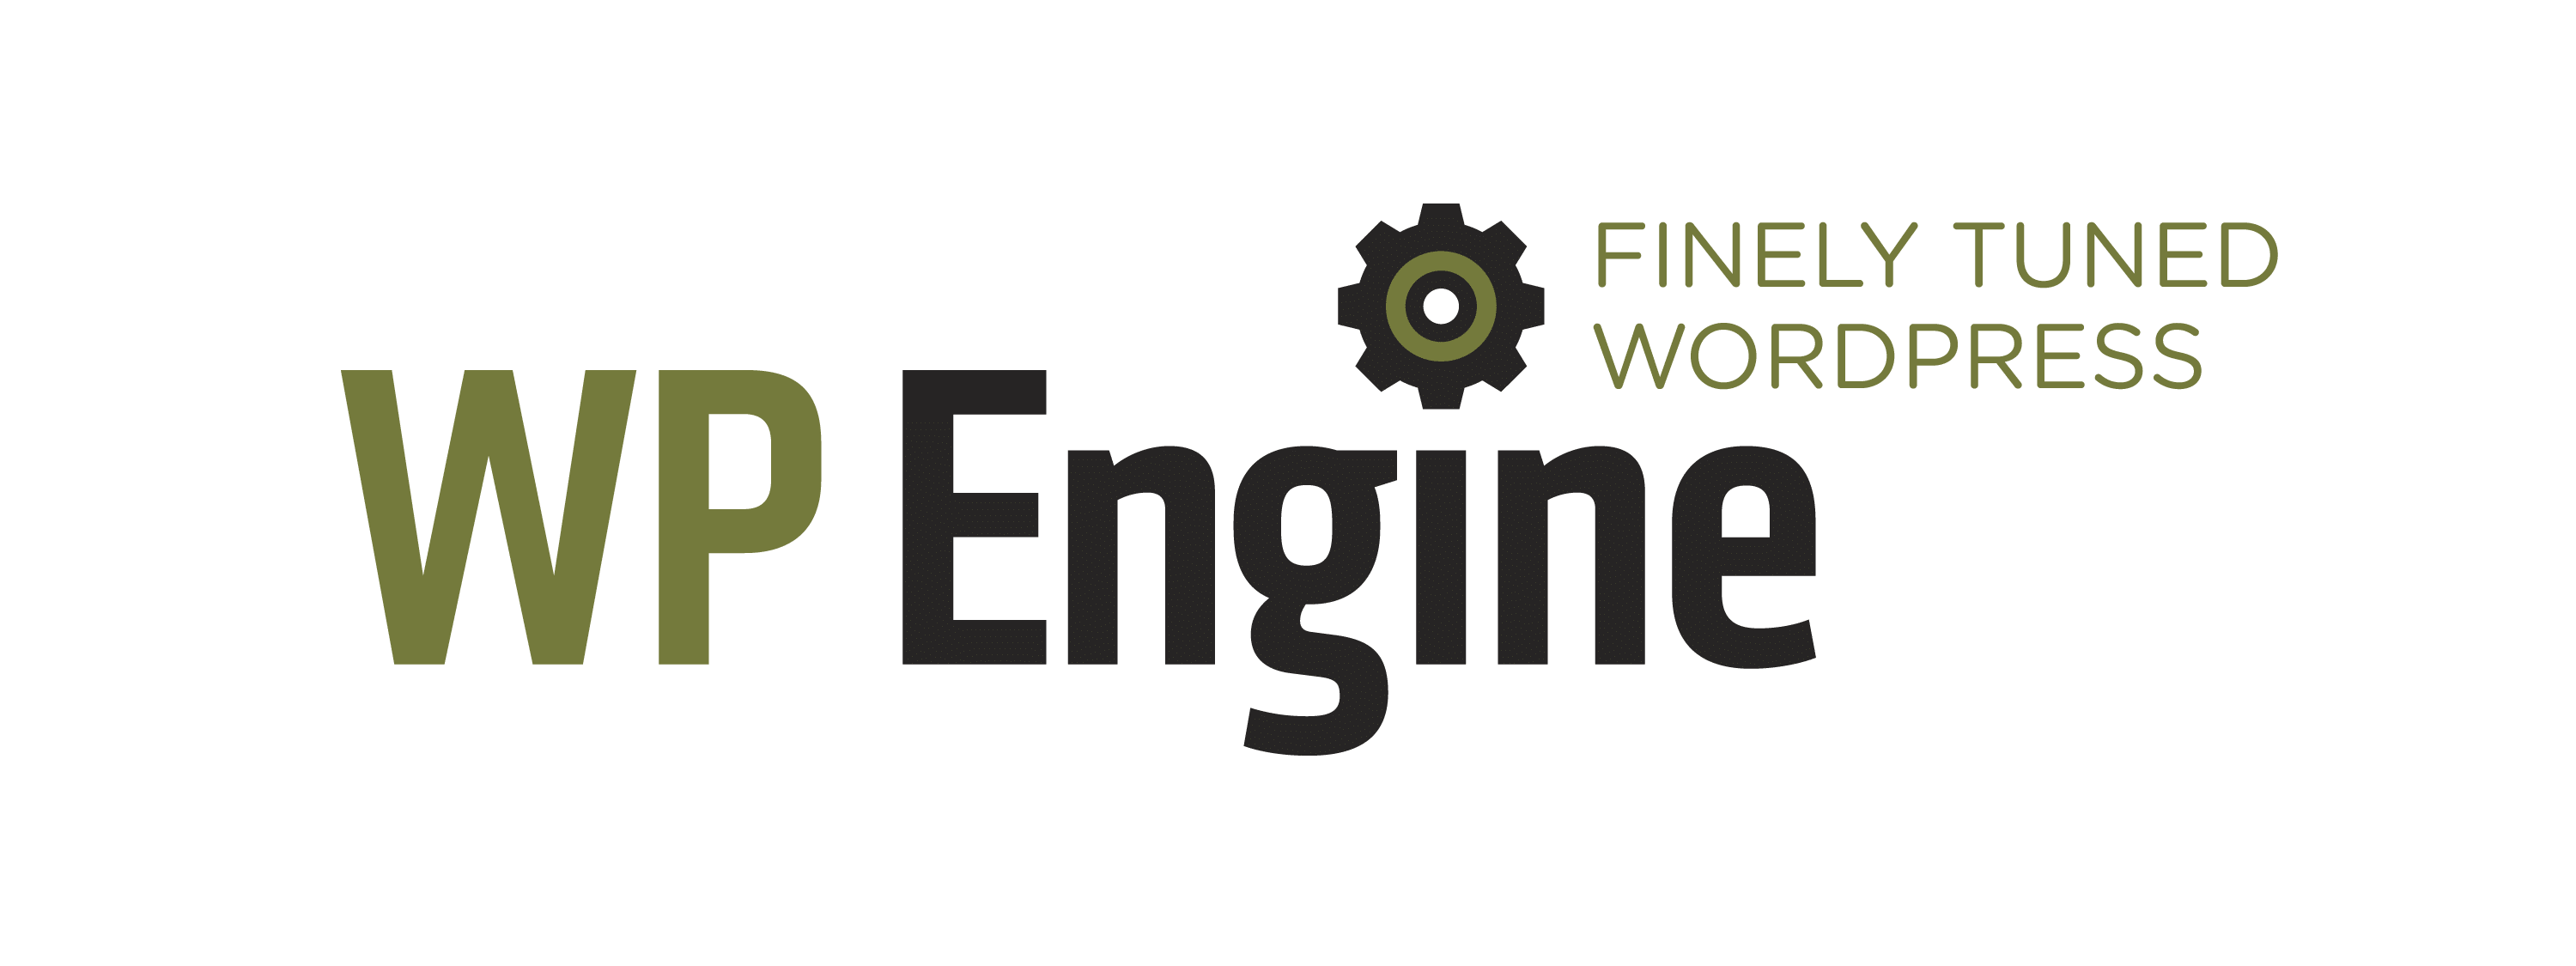 Wp engine coupon code 2018